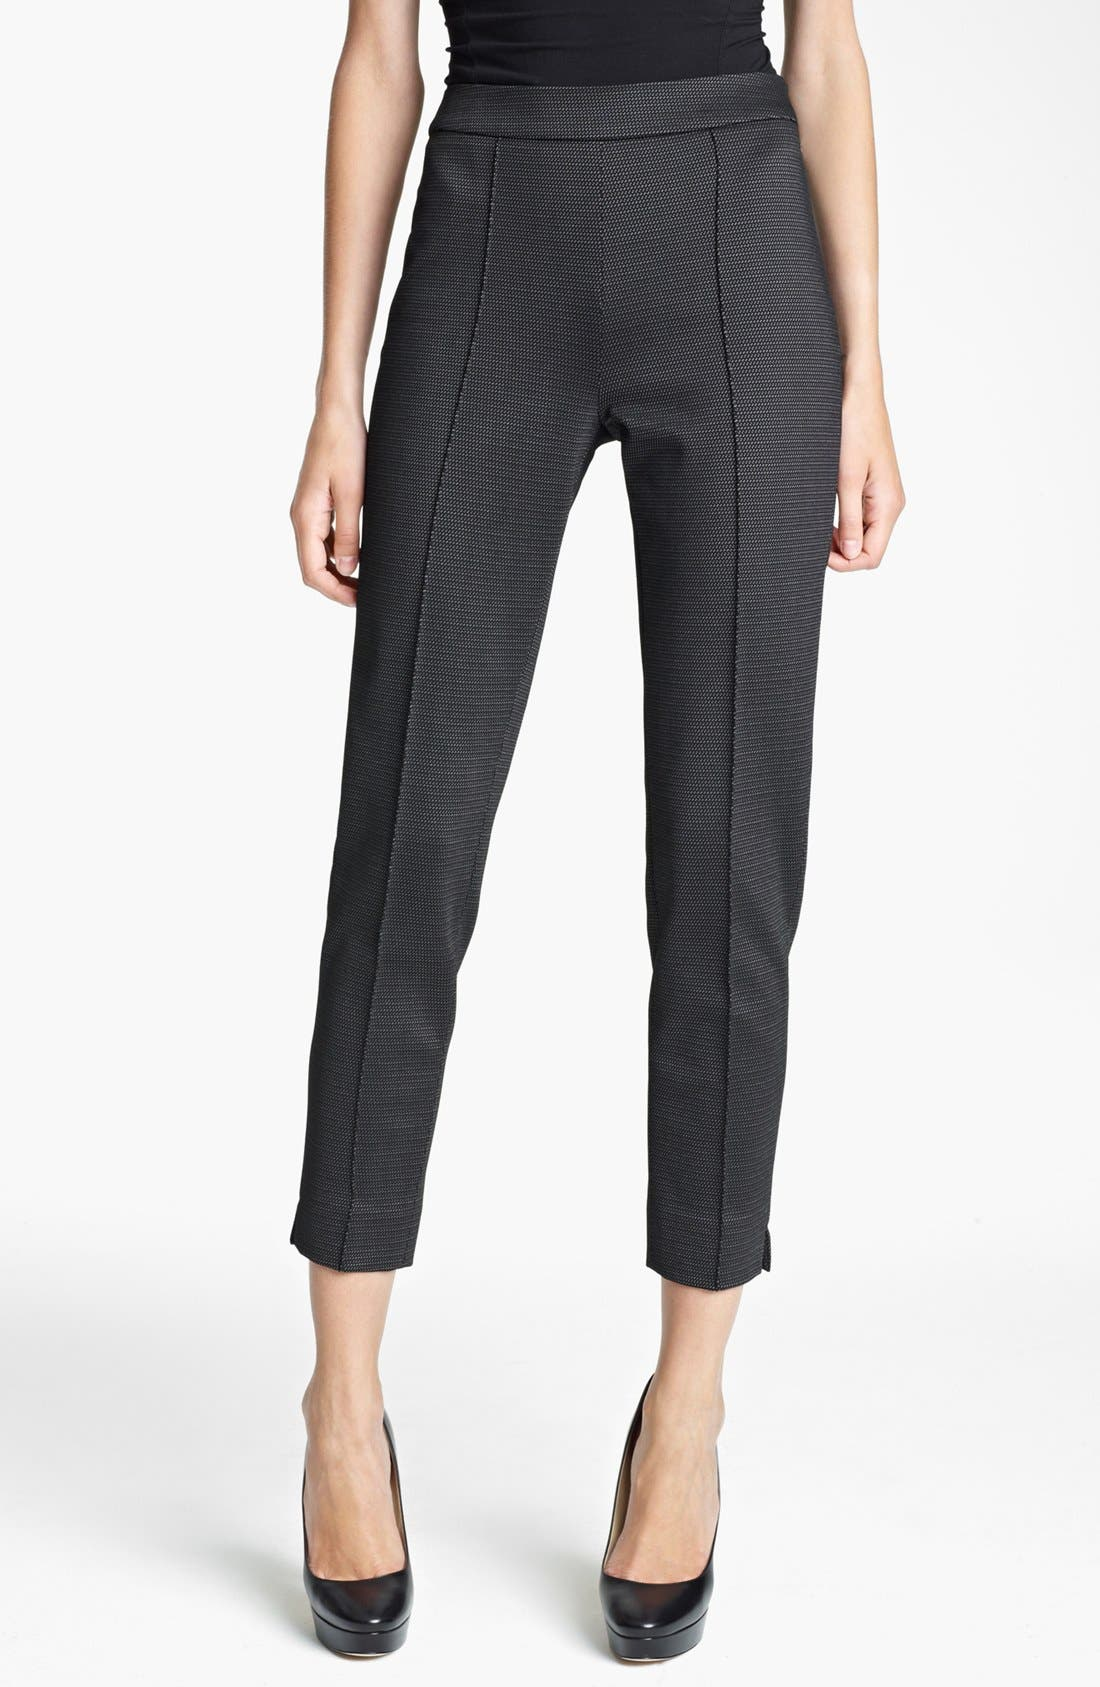 Alternate Image 1 Selected - Max Mara 'Valdorf' Print Jersey Pants